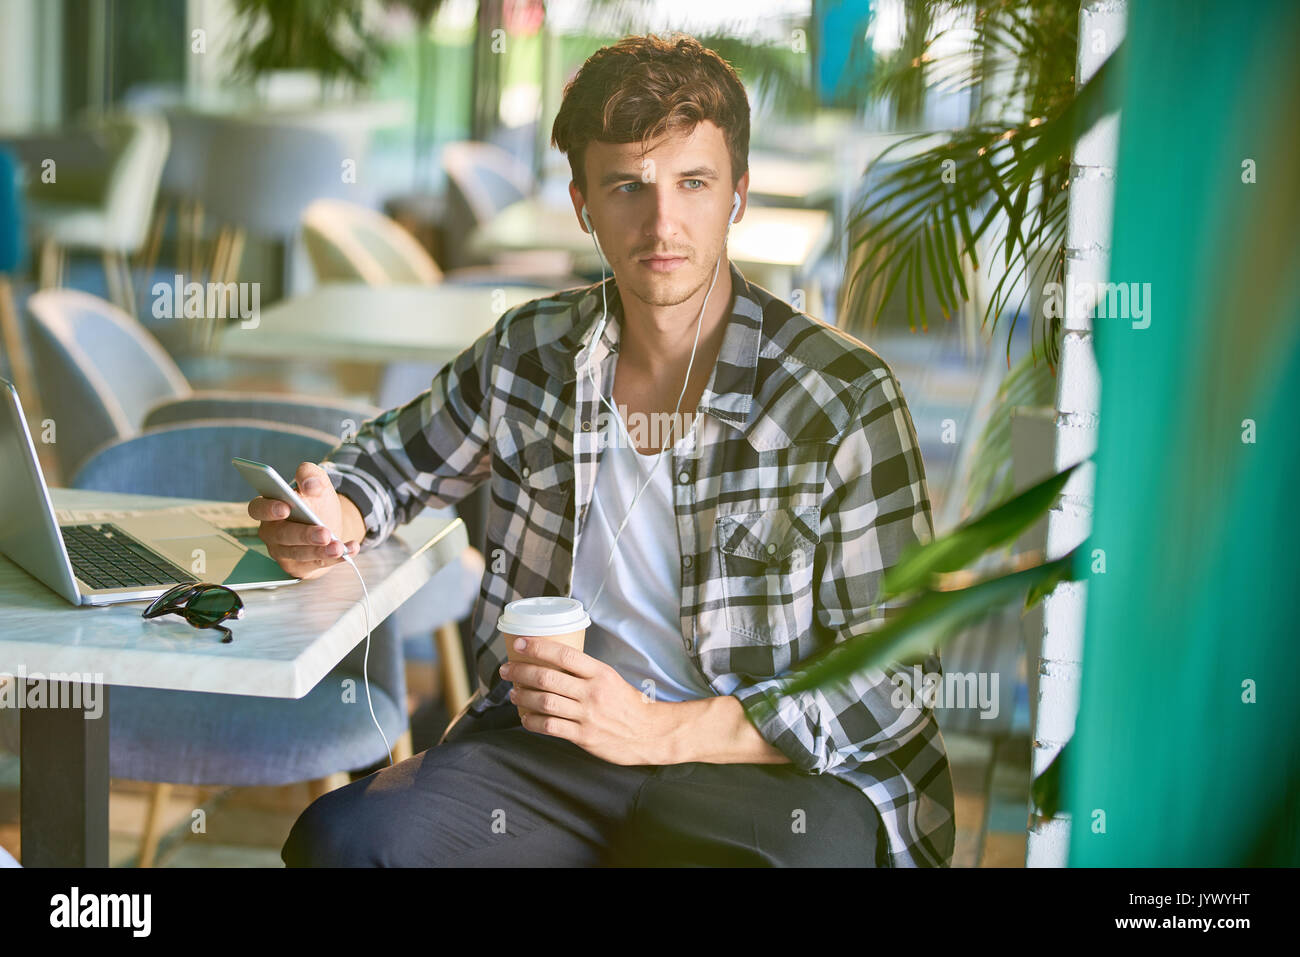 Handsome Young Man in Cafe - Stock Image